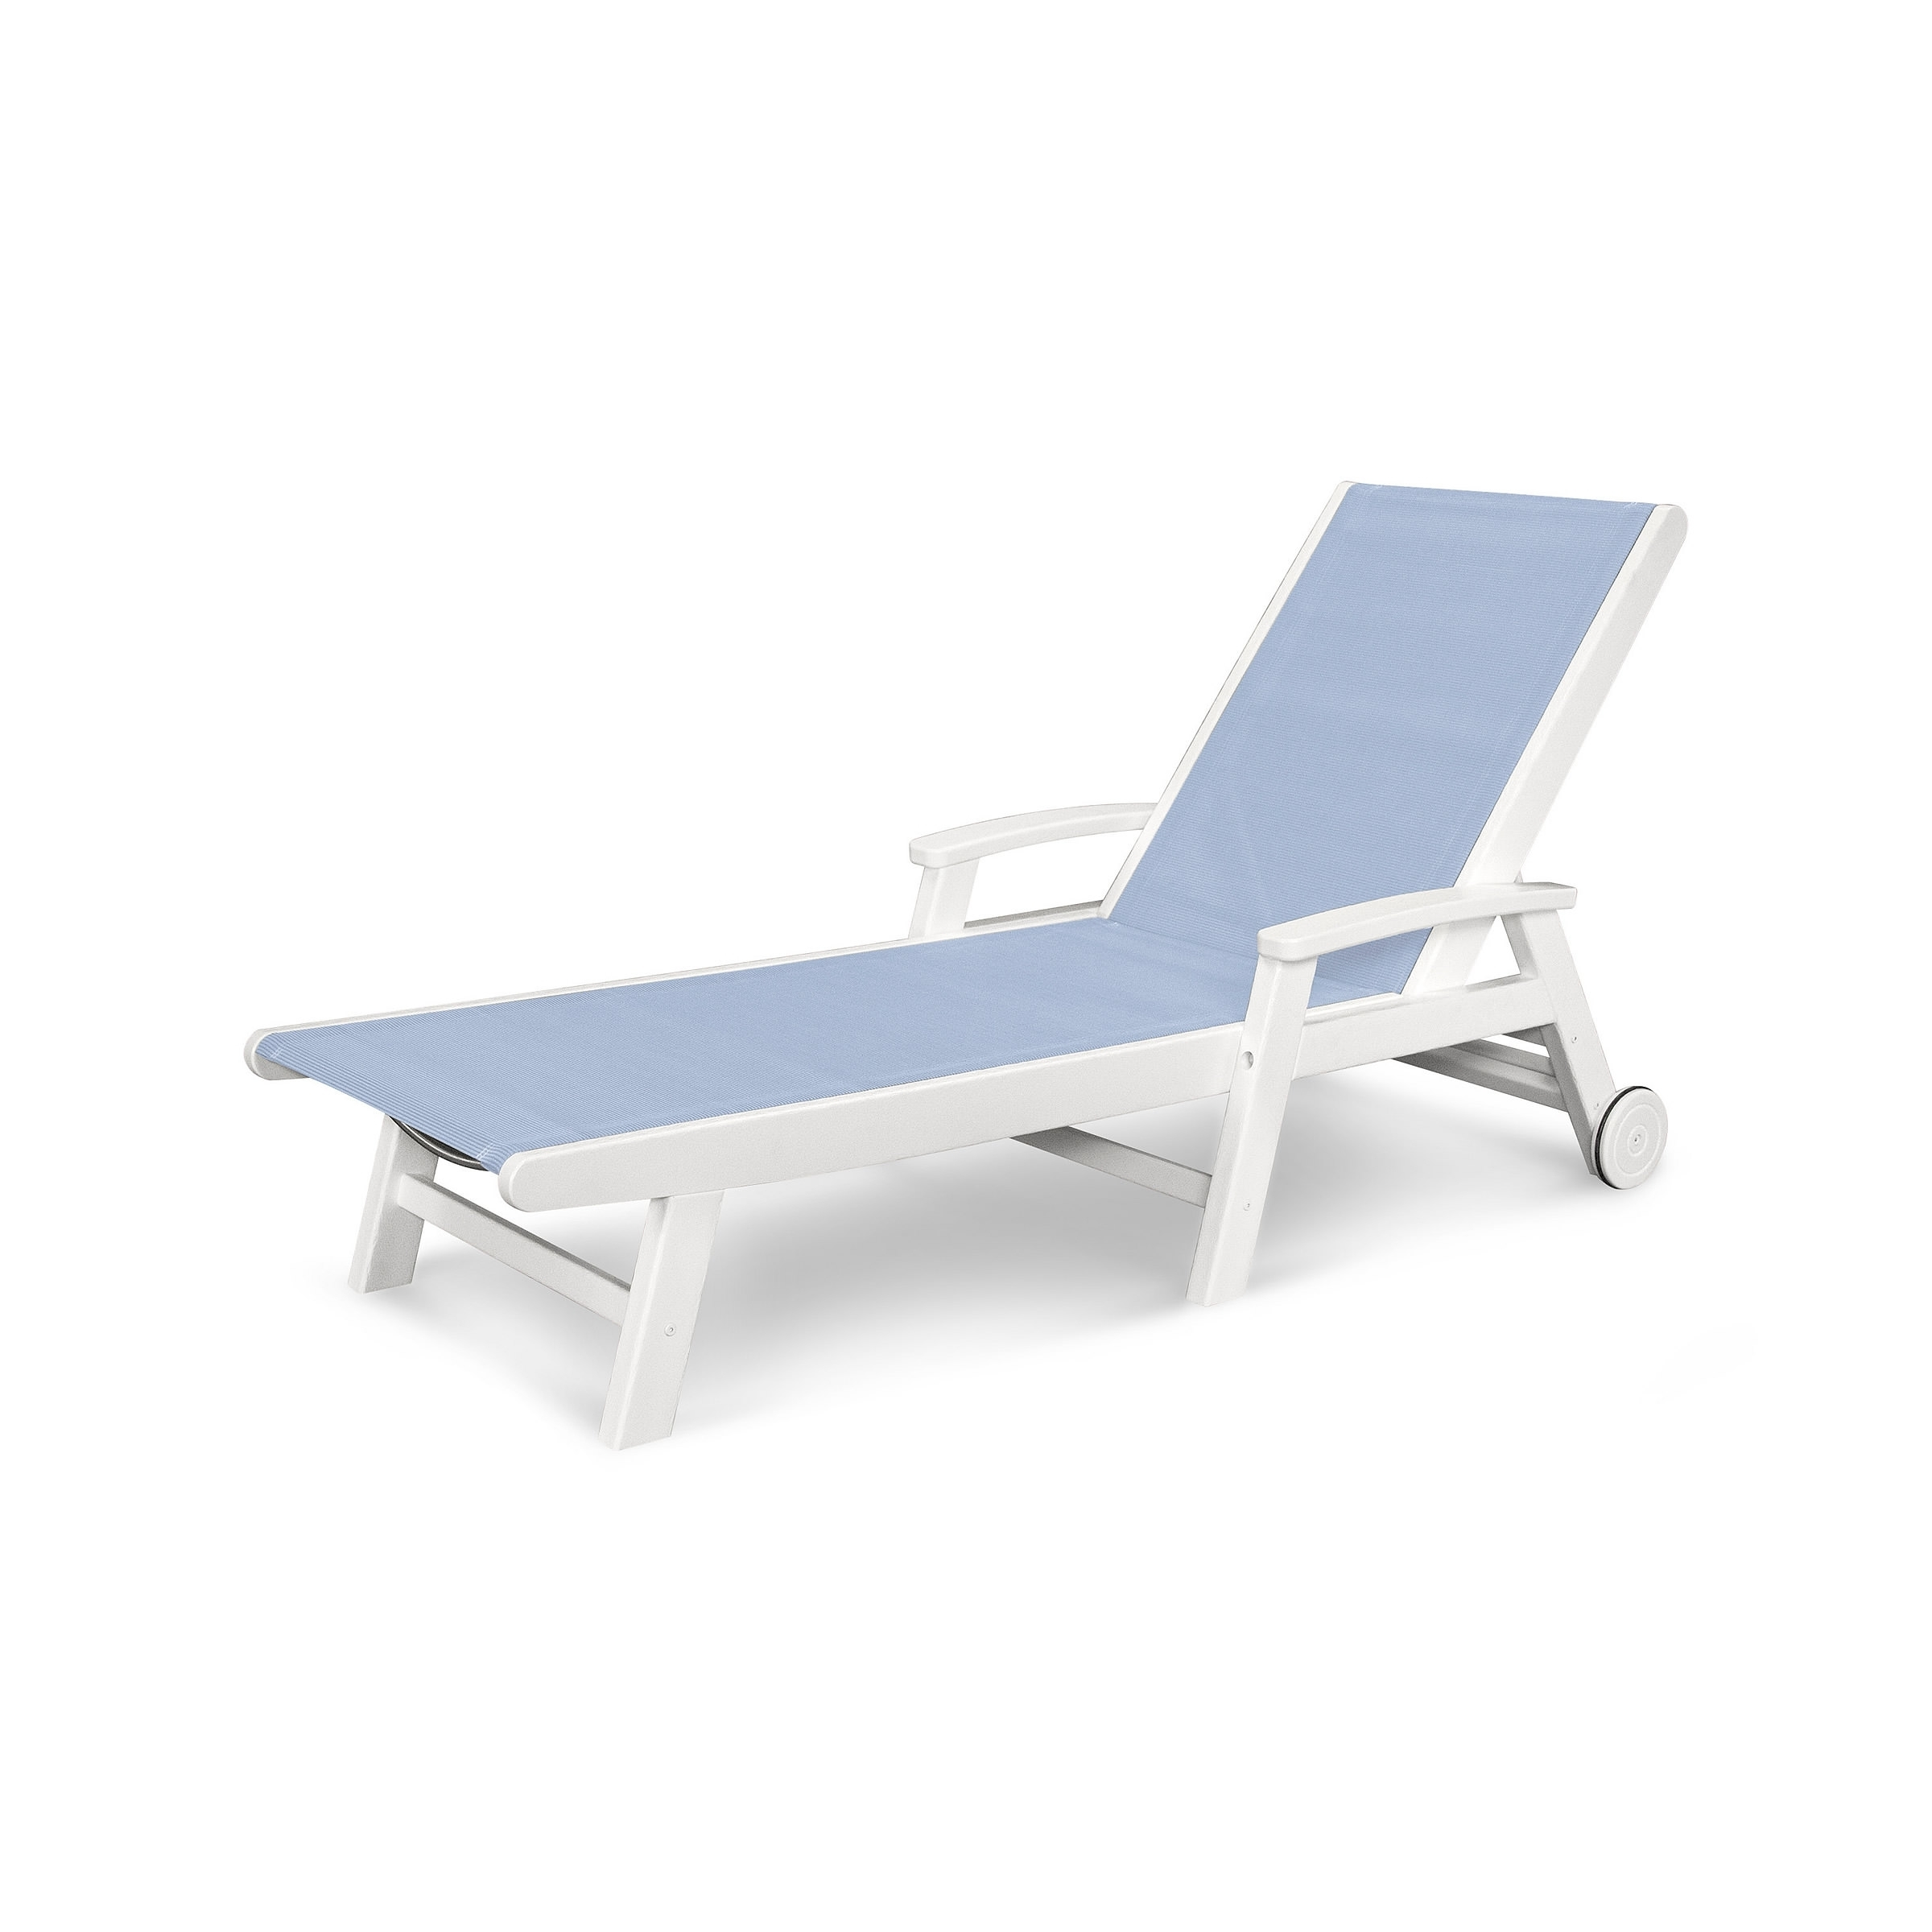 Famous Pool Chaise Lounges With Regard To Polywood Furniture (View 3 of 15)